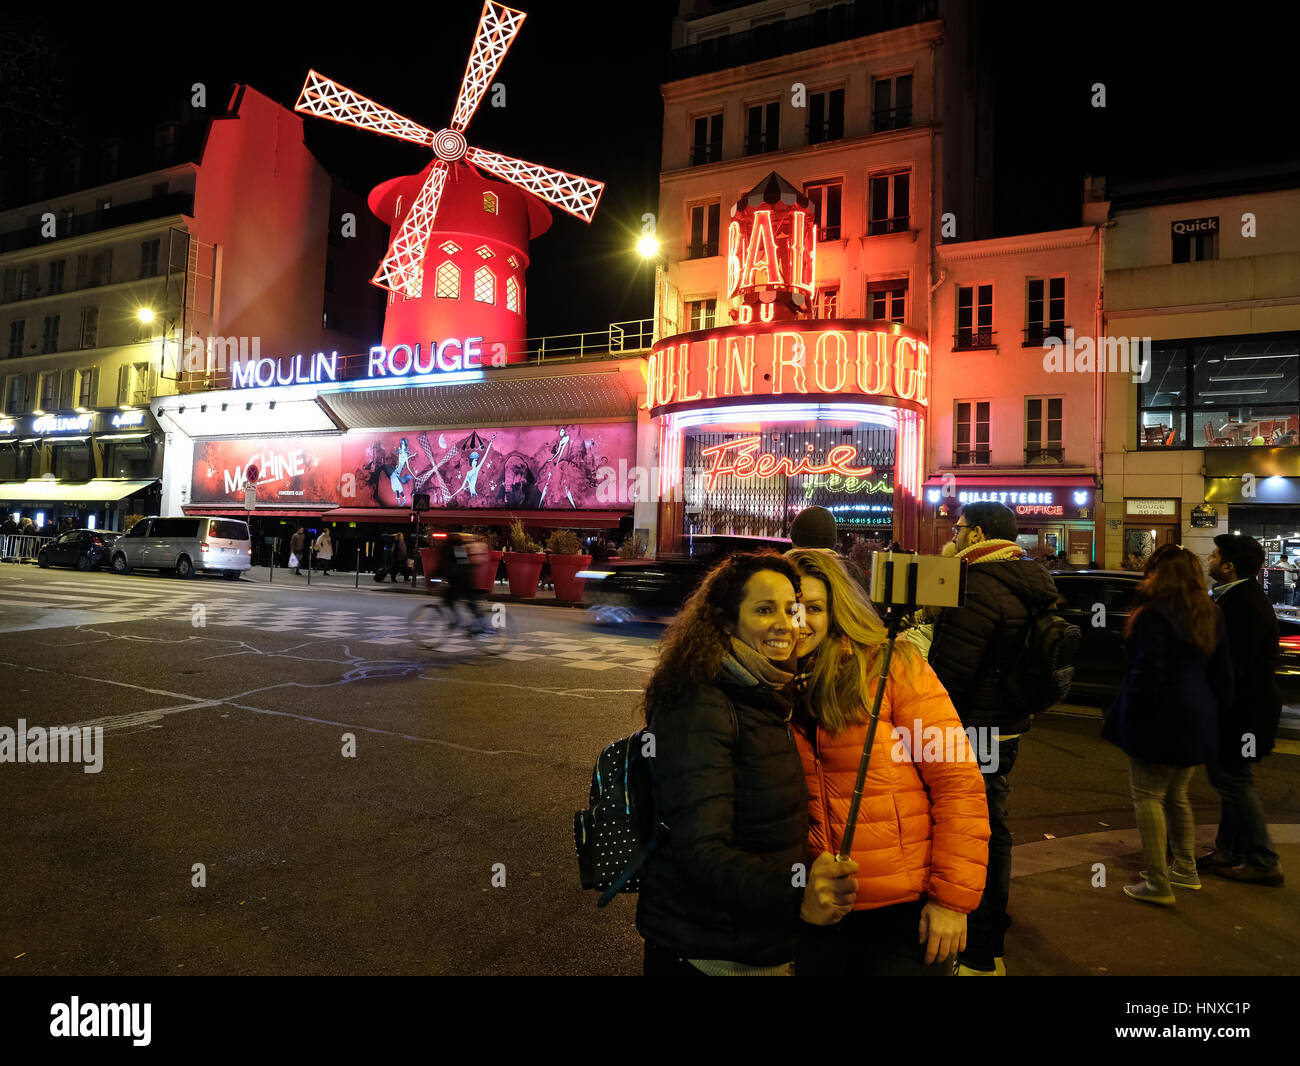 Moulin Rouge, French for Red Mill, is a cabaret club in the Pigalle area of Paris, France - Stock Image